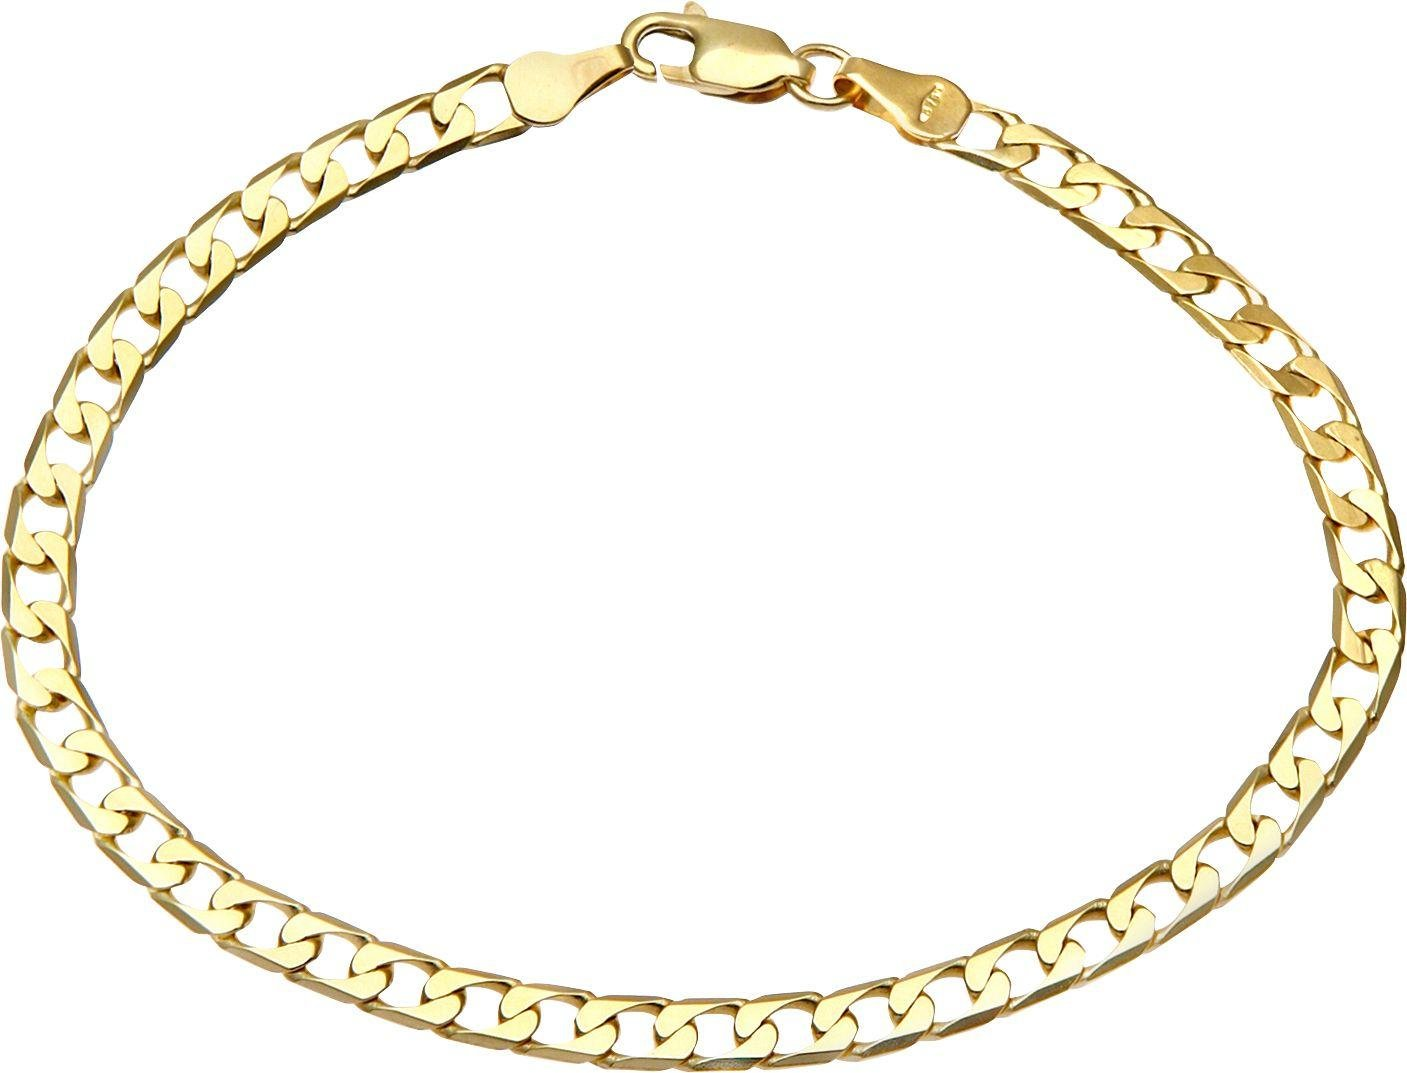 Image of 9 Carat Gold - 20 inch Curb Chain.